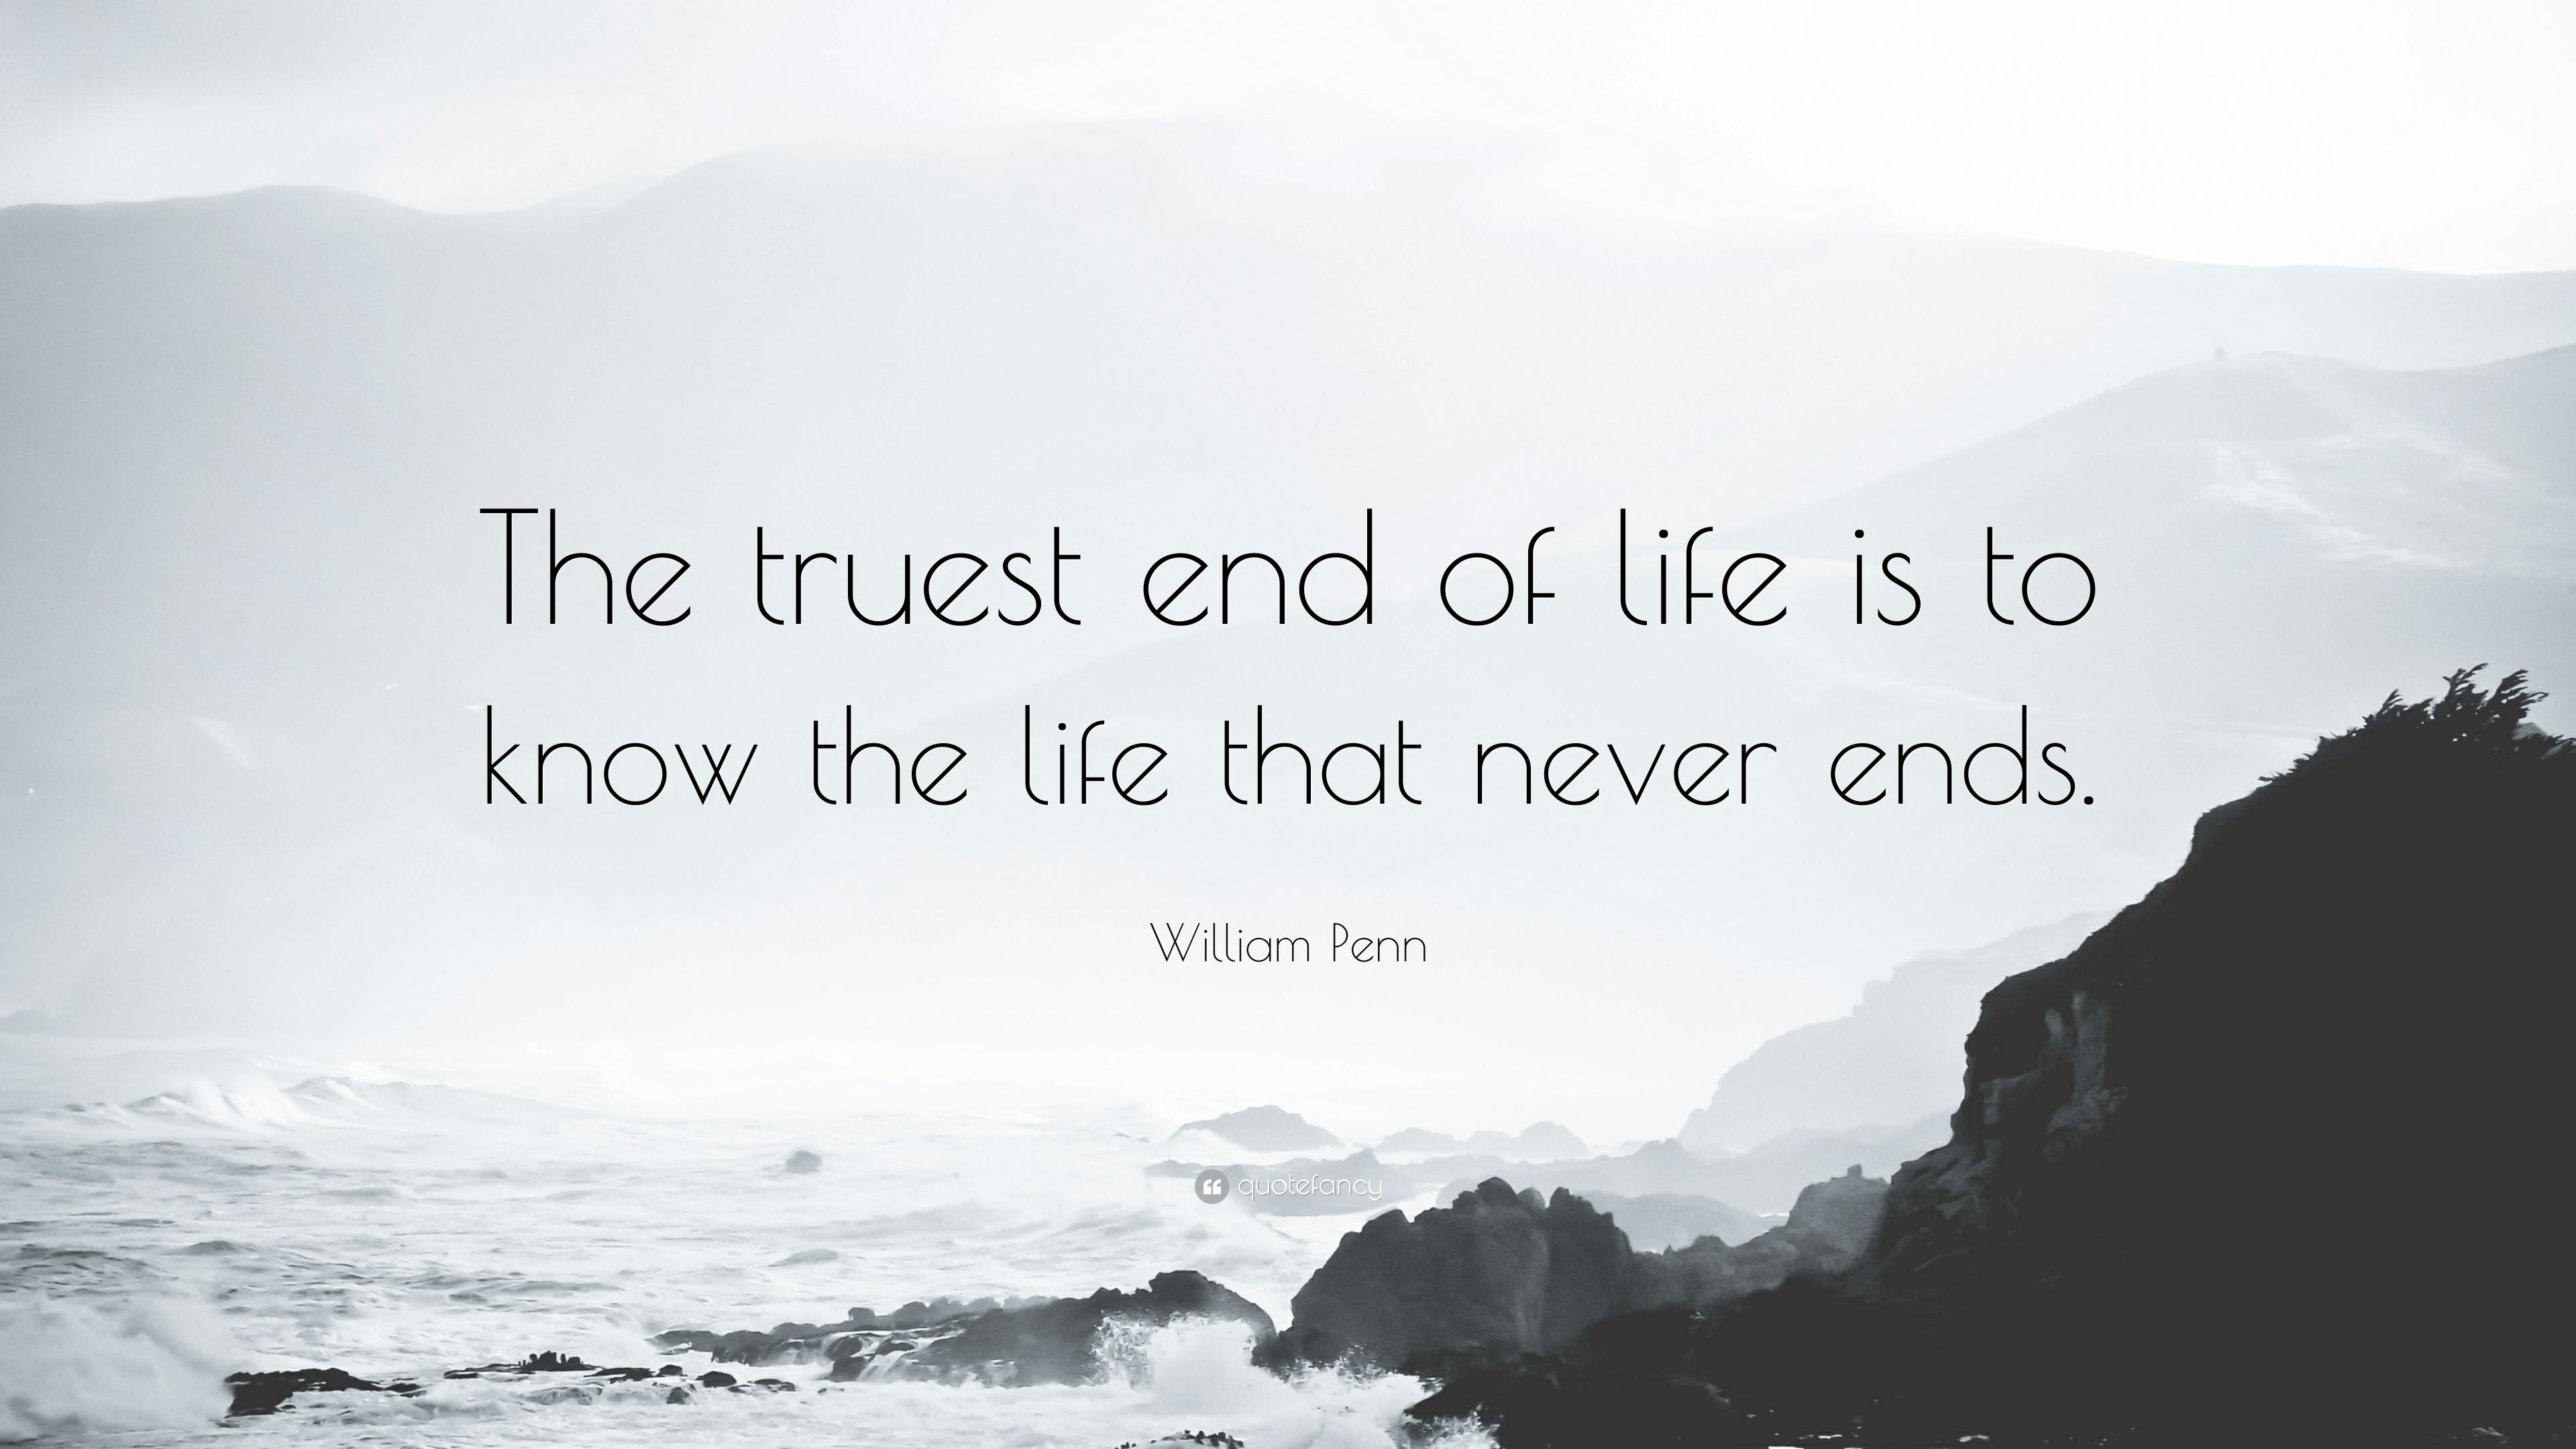 William Penn Quote The Truest End Of Life Is To Know The Life That